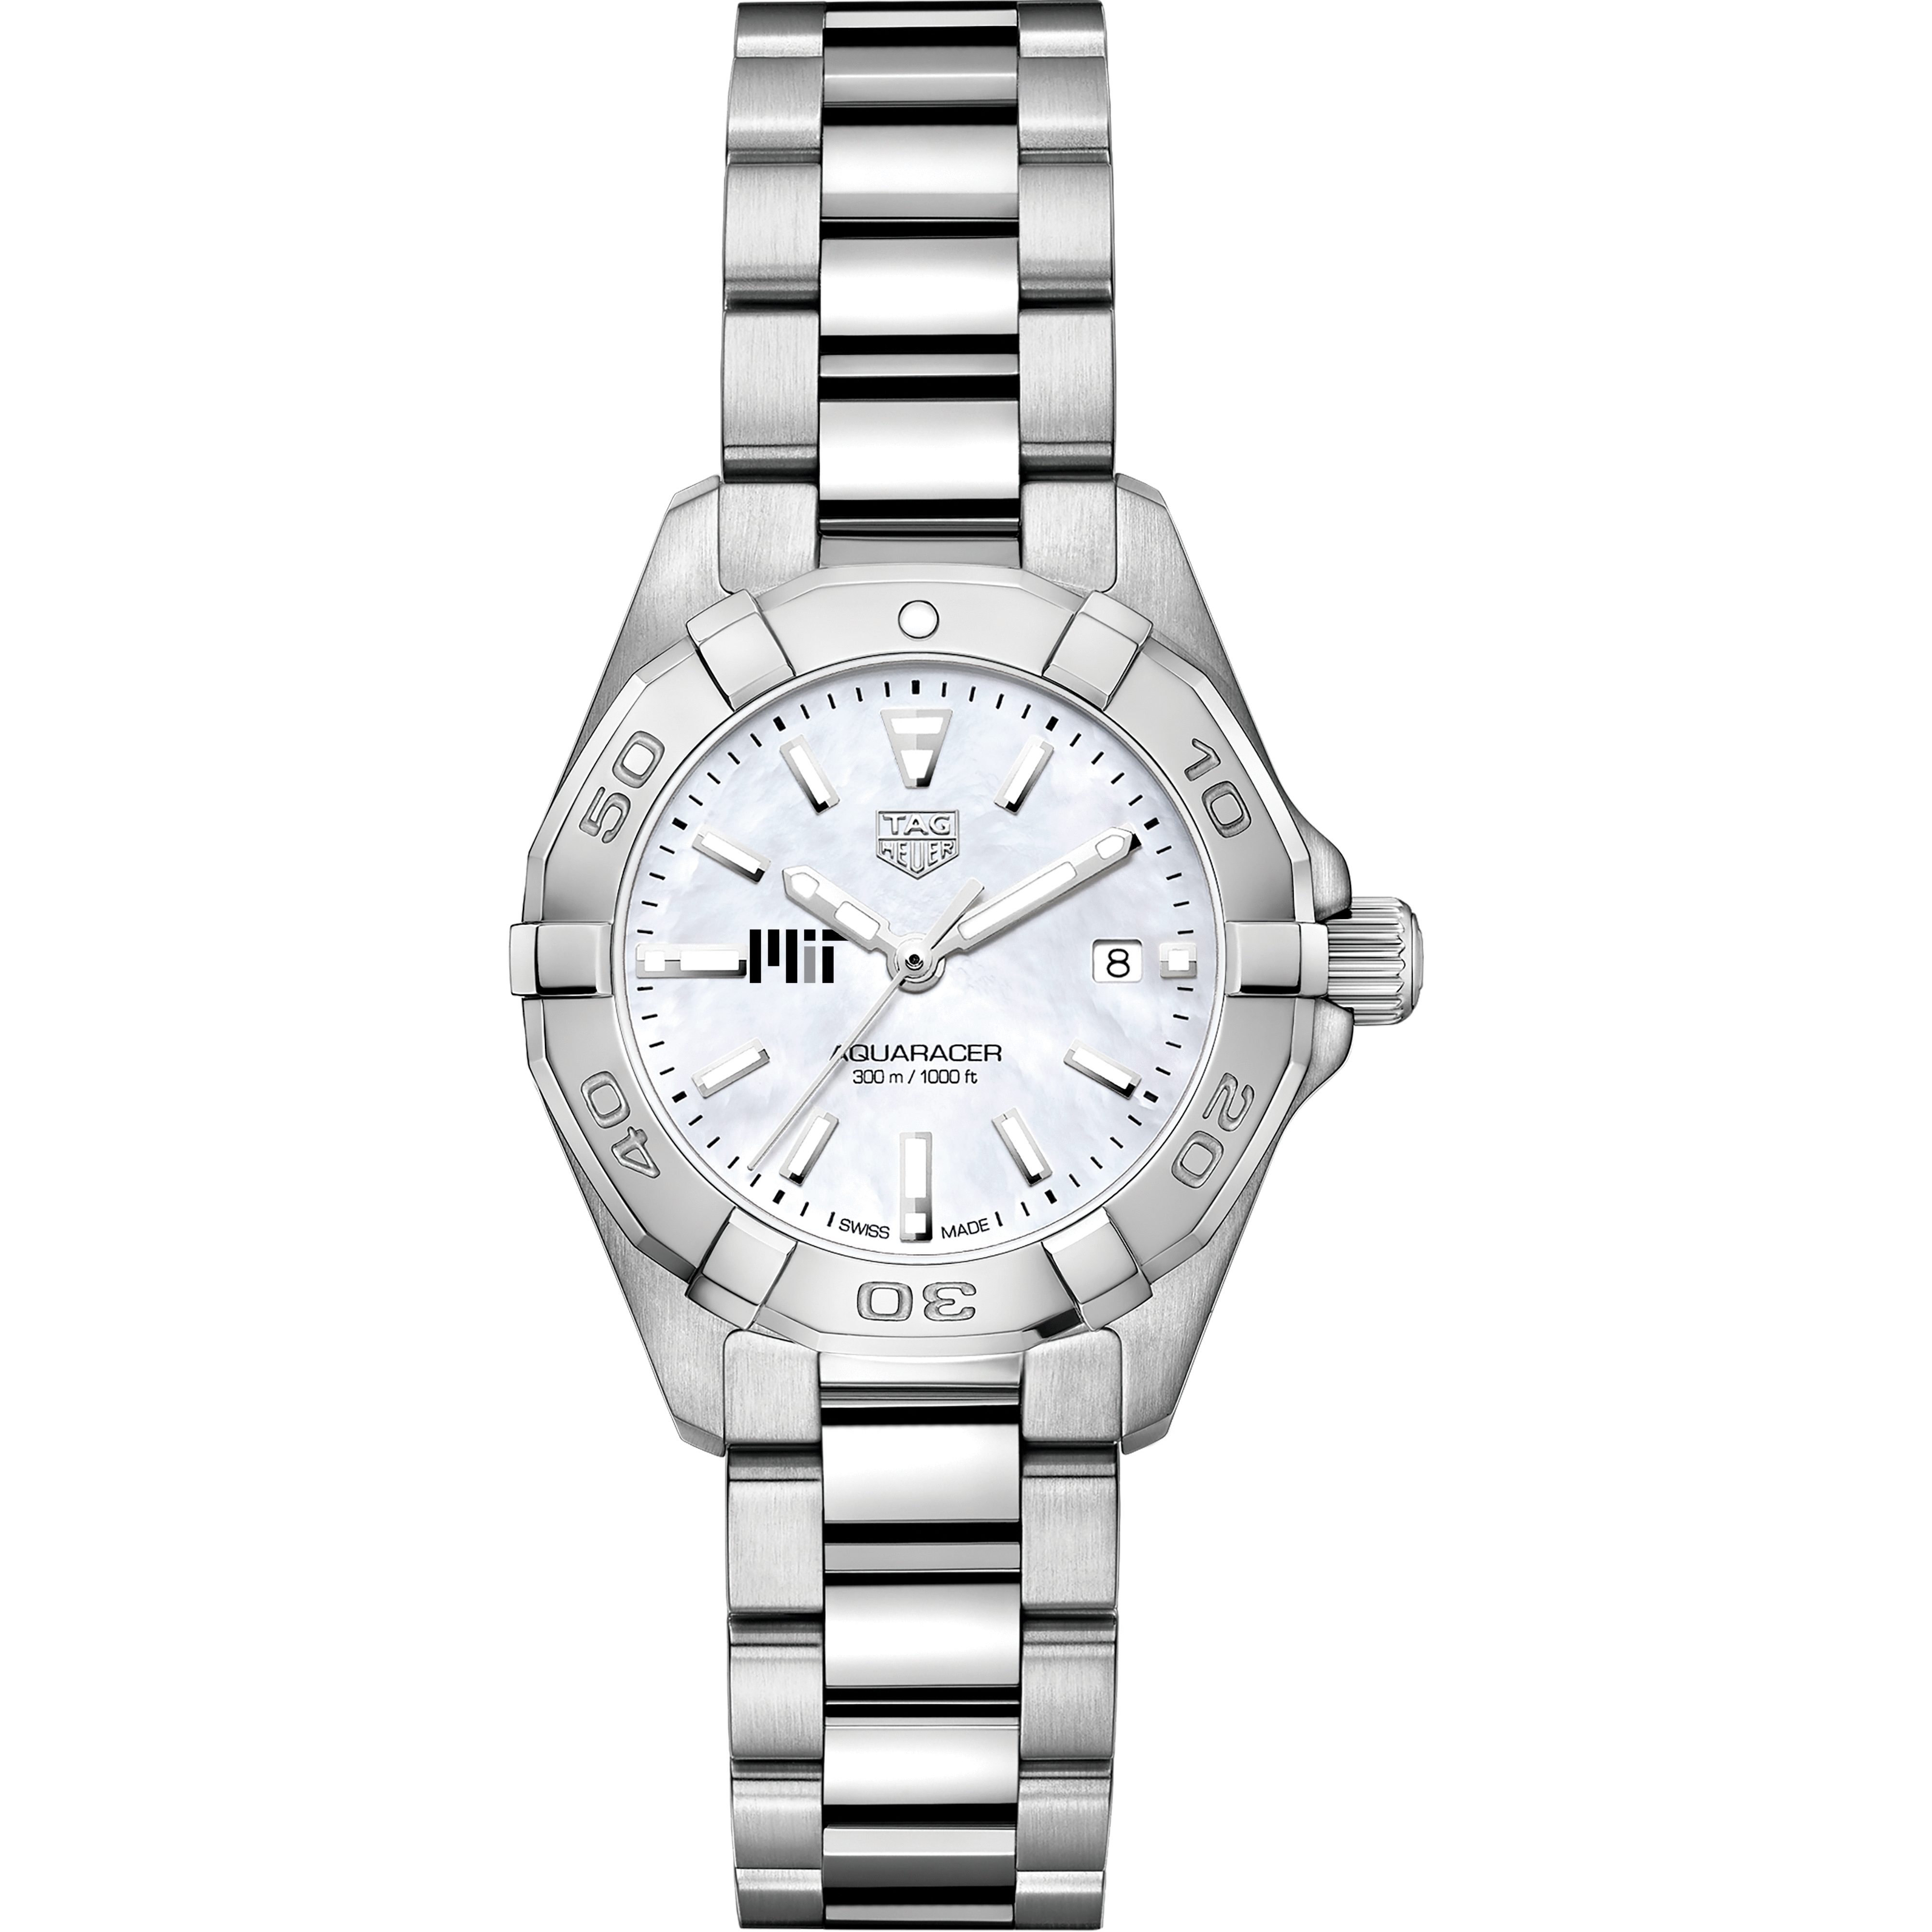 MIT Women's TAG Heuer Steel Aquaracer with MOP Dial - Image 2